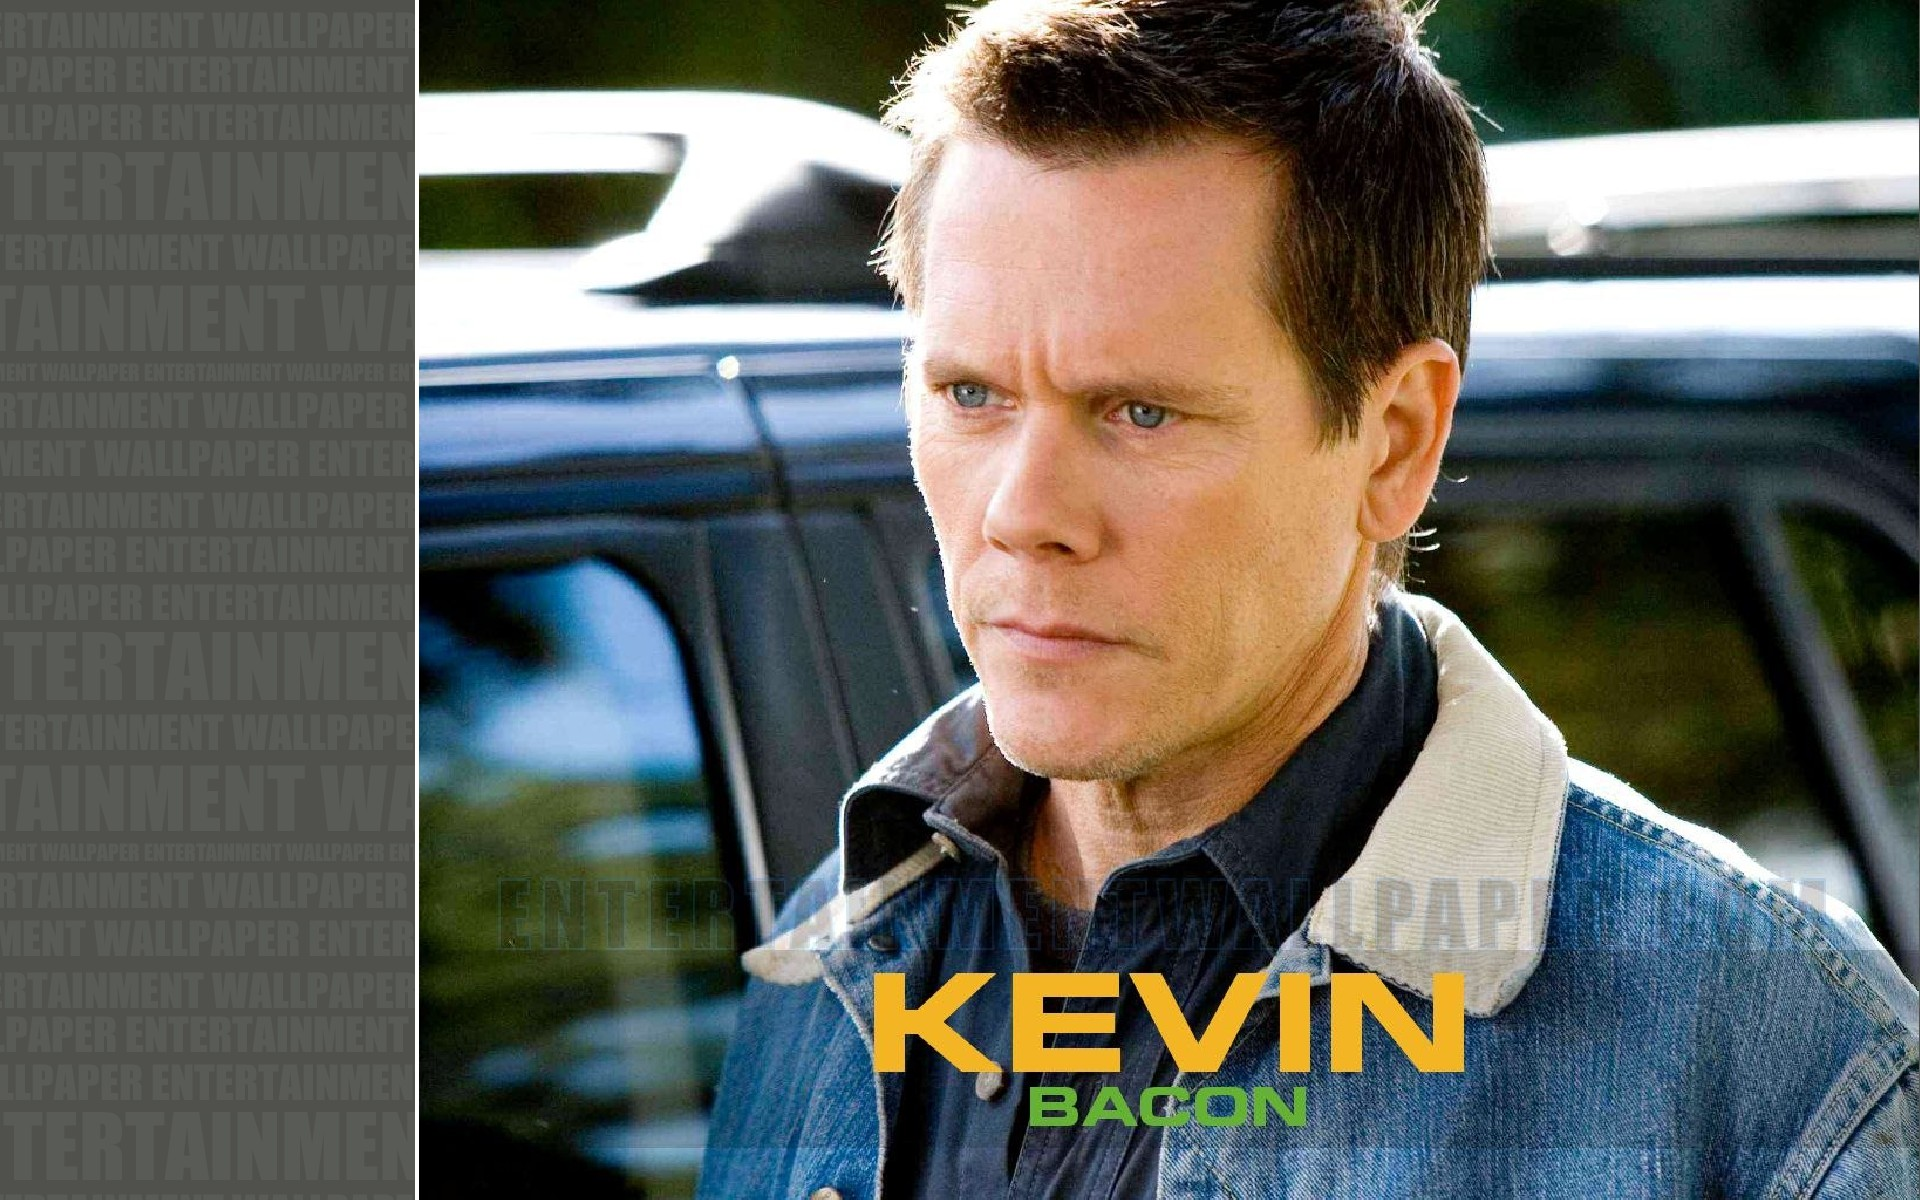 Kevin Bacon Wallpaper   30027177 1920x1200 Desktop 1920x1200